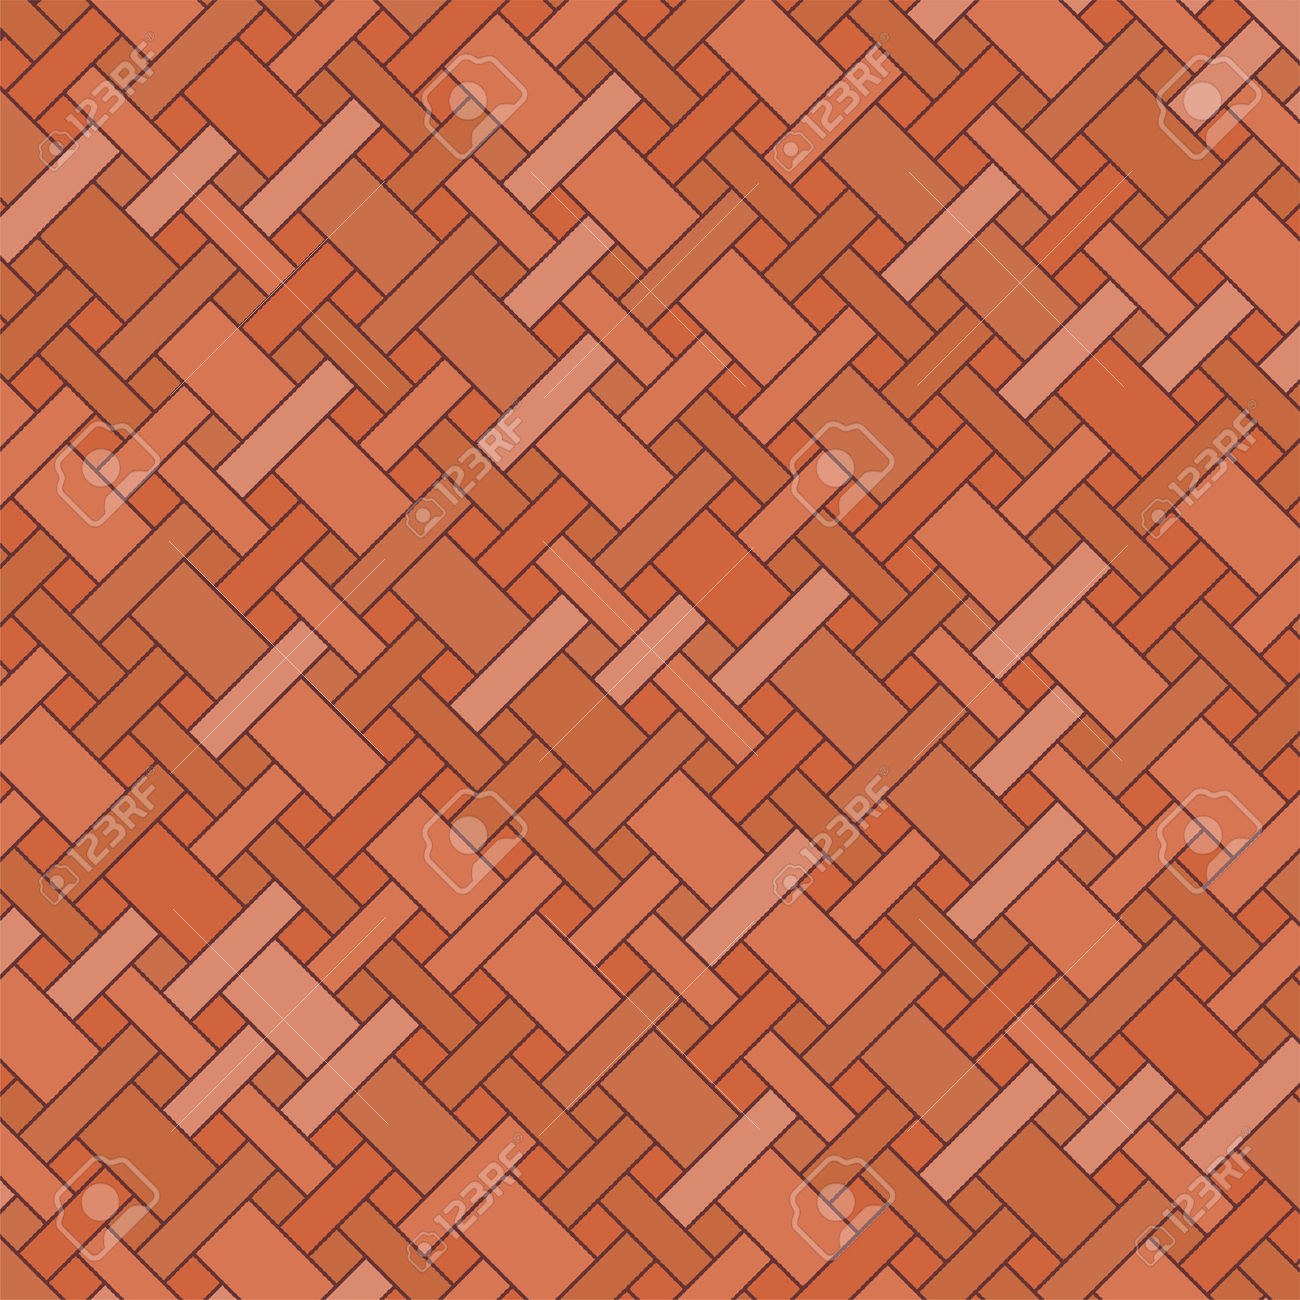 Brick Floor With Different Earth Color Tones Royalty Free Cliparts.